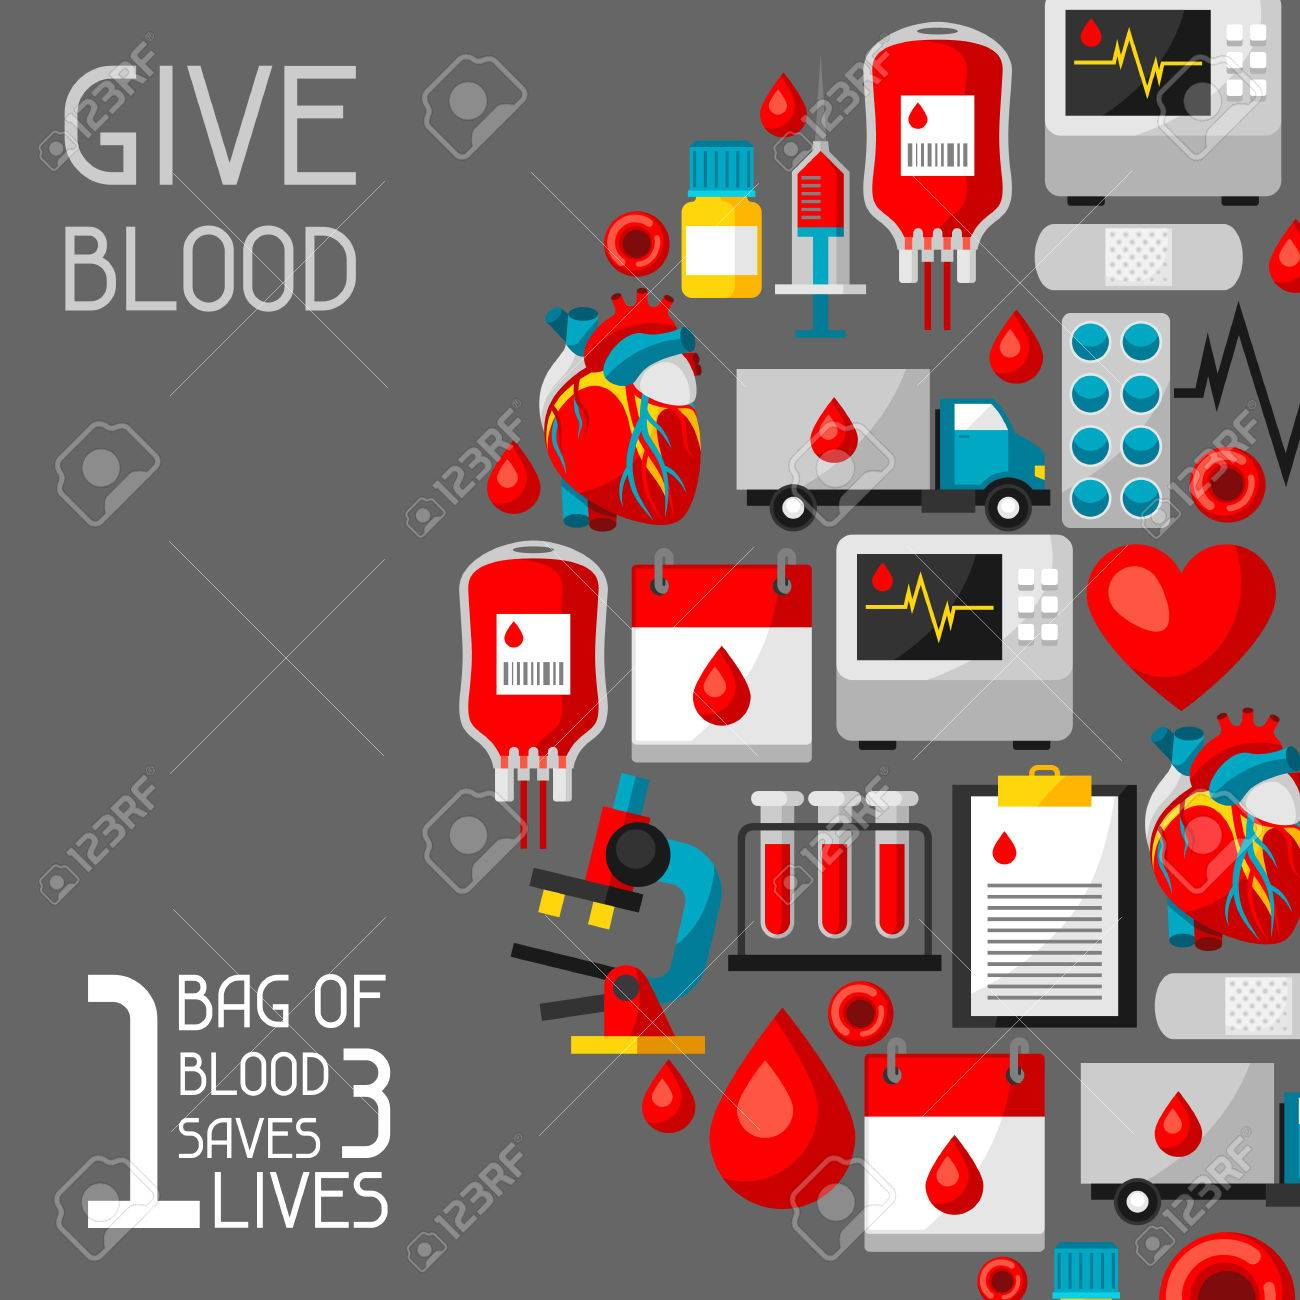 1 bag of blood saves 3 lives. Background with blood donation items. Medical and health care objects - 80319286